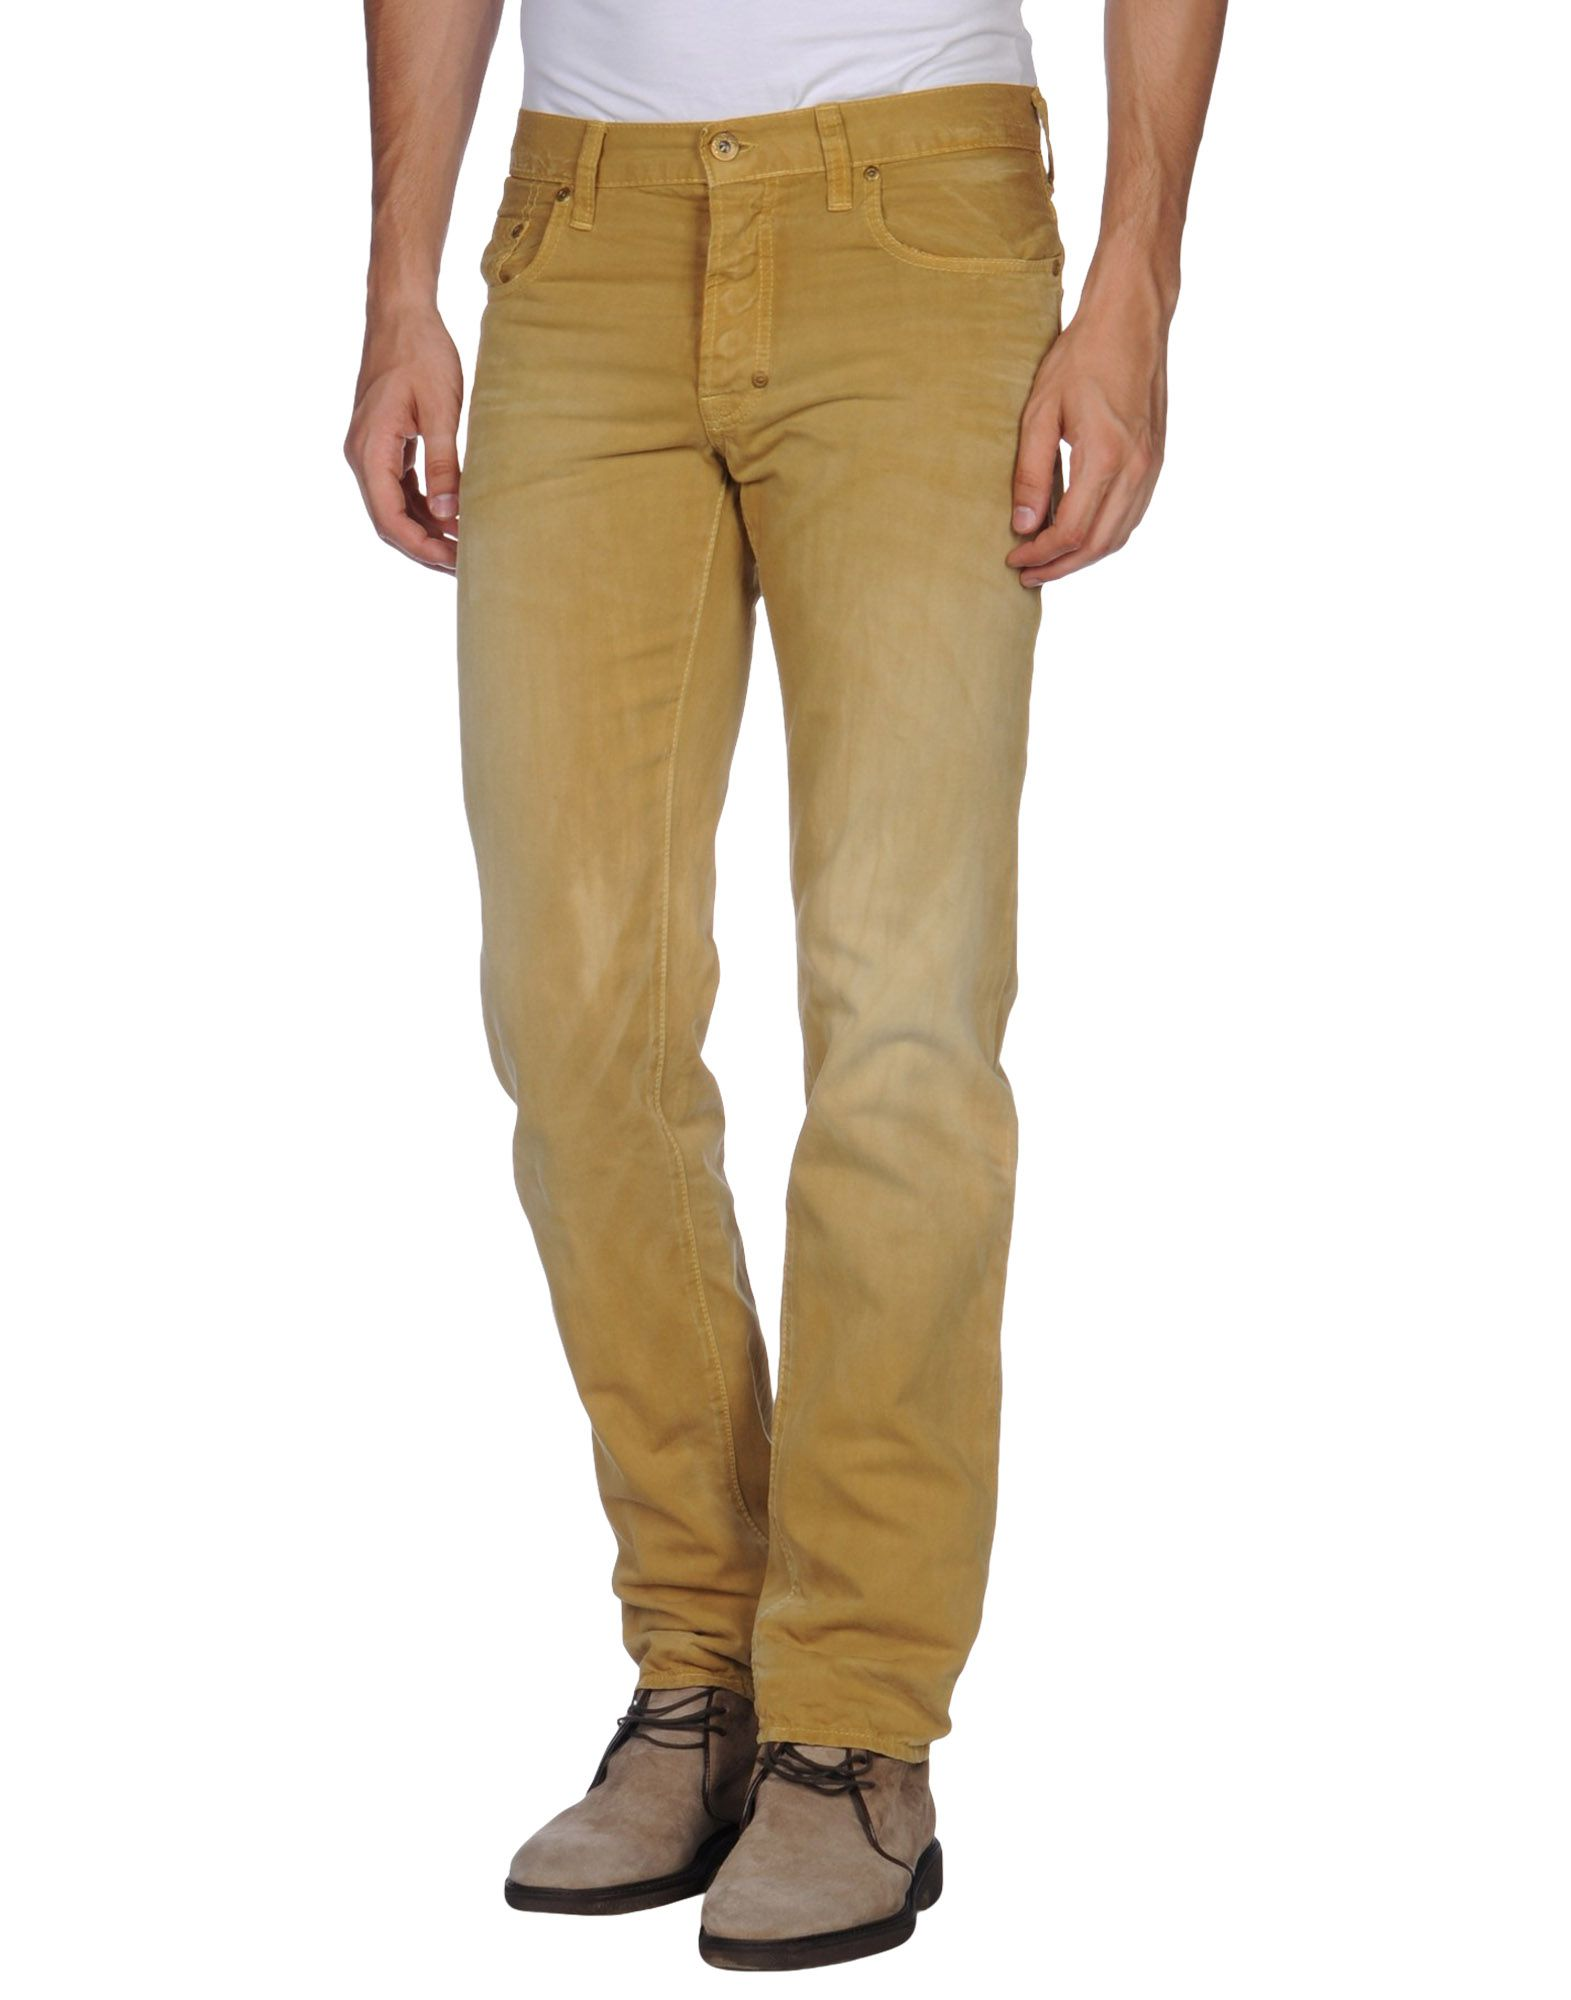 Shop men's casual khaki pants big & tall at Dockers® US for the best selection online. Dockers® - well-crafted comfort to help conquer the day.